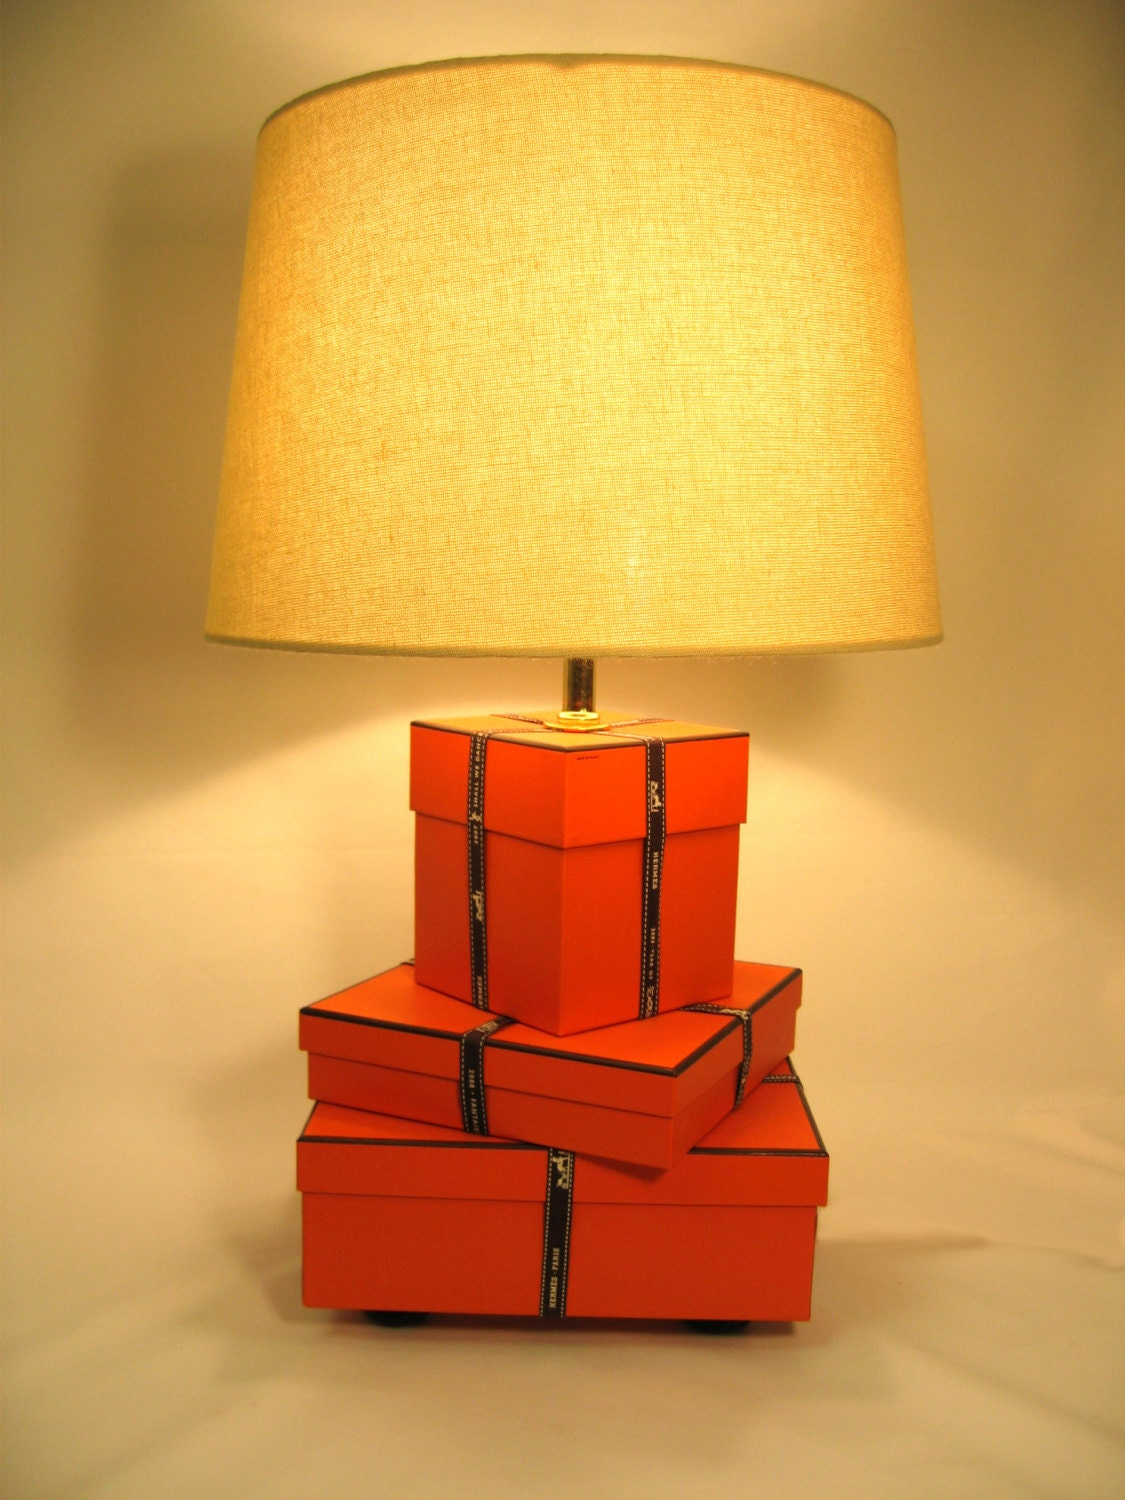 Hermes Hermes Lamp Orange Lamp Hermes Gift Boxes And